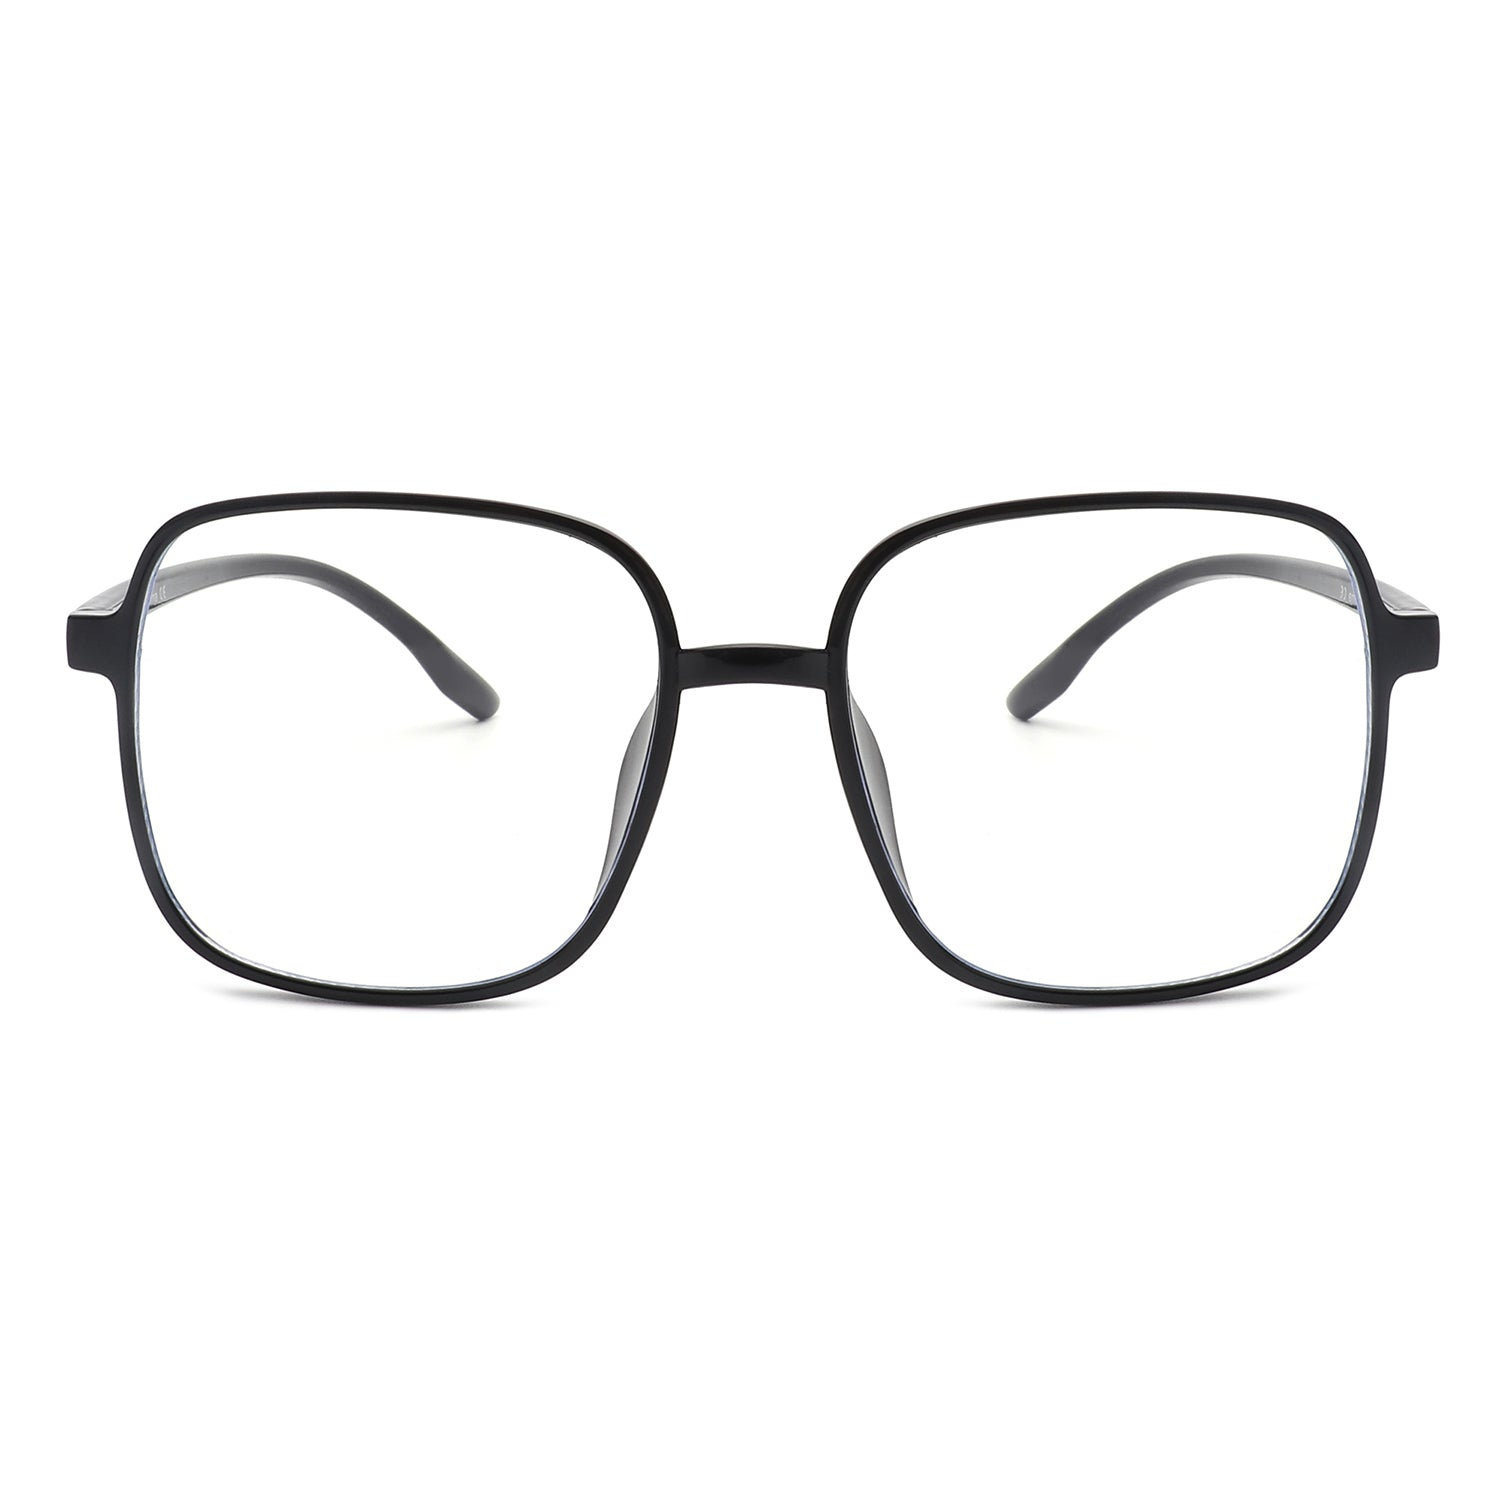 B1013 - Square Oversize Blue Light Blocker Glasses